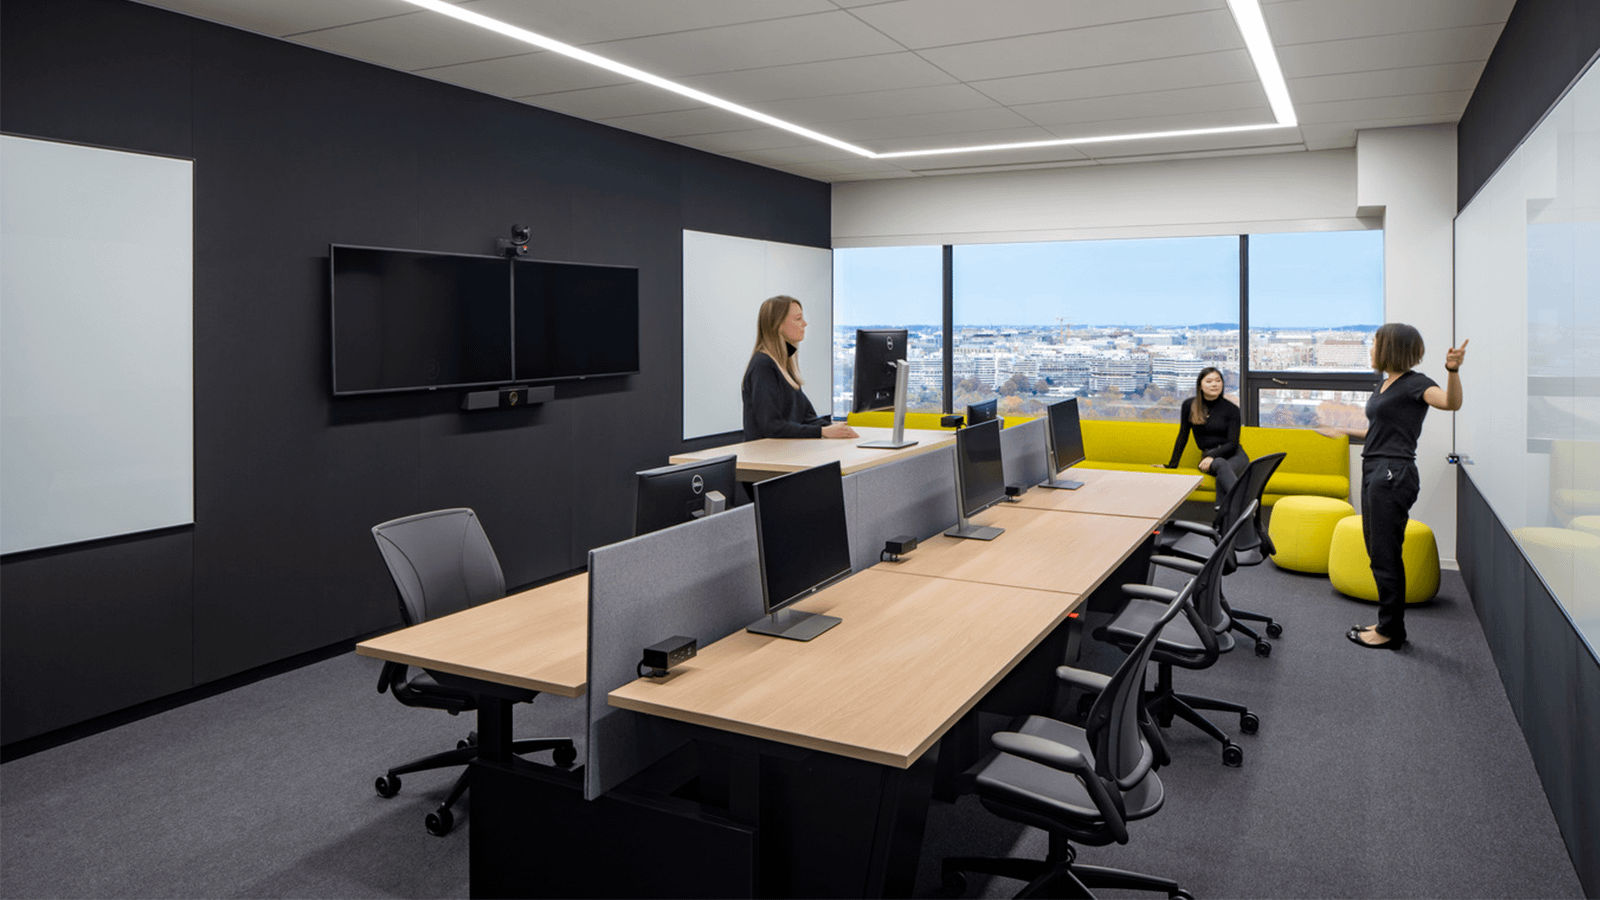 Yext's offices feature many spaces for collaboration.